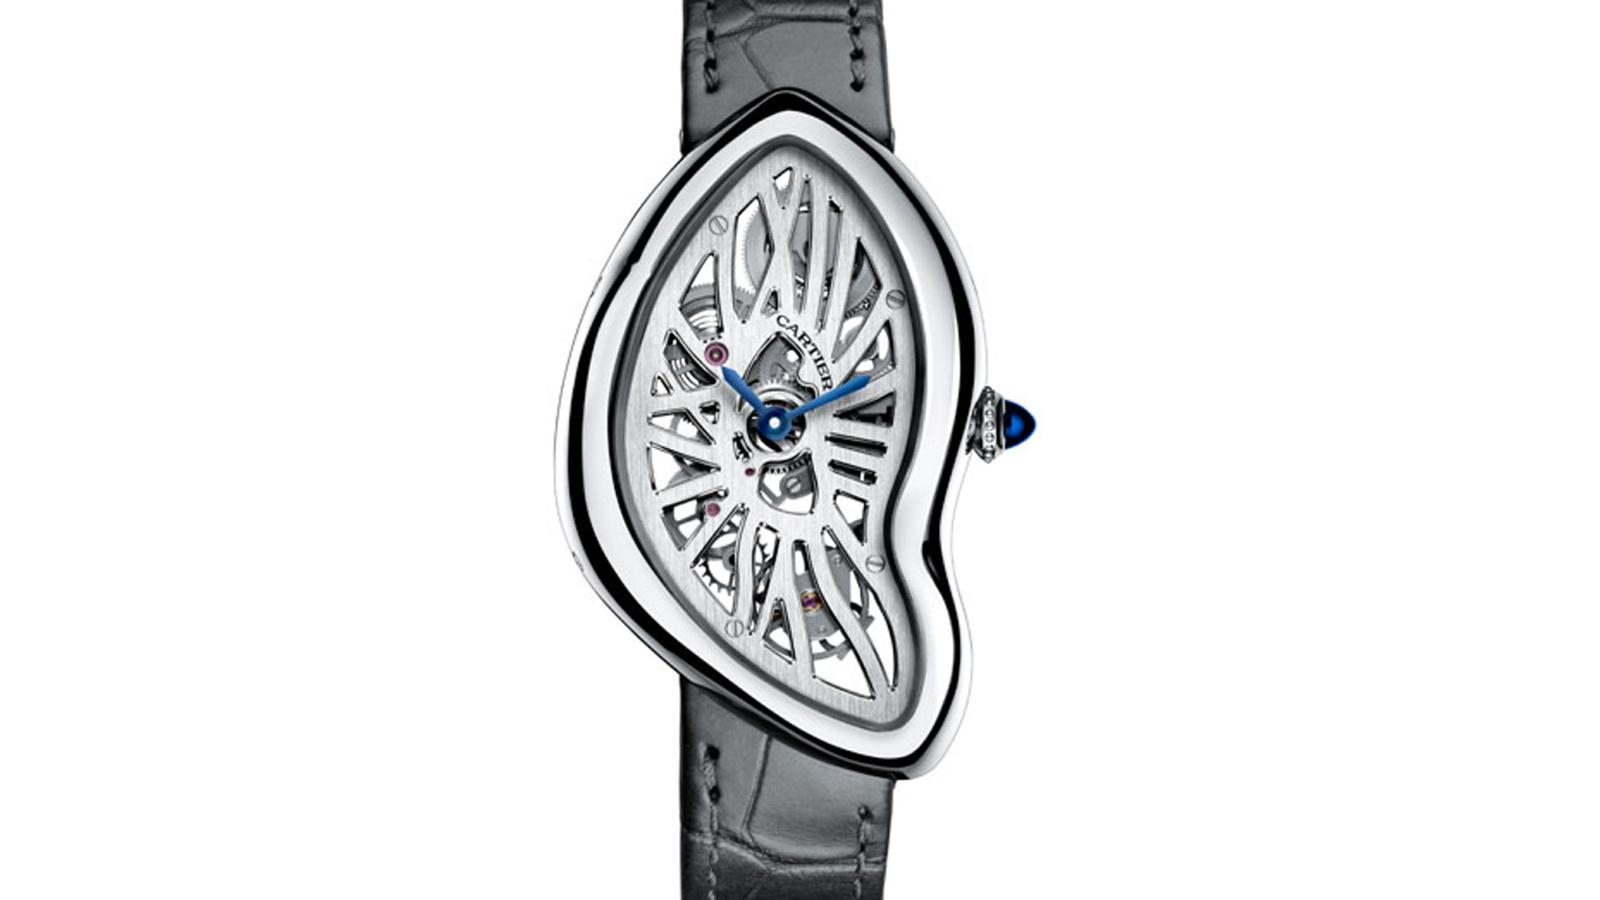 Cartier's Crash is Reborn as a Skeleton